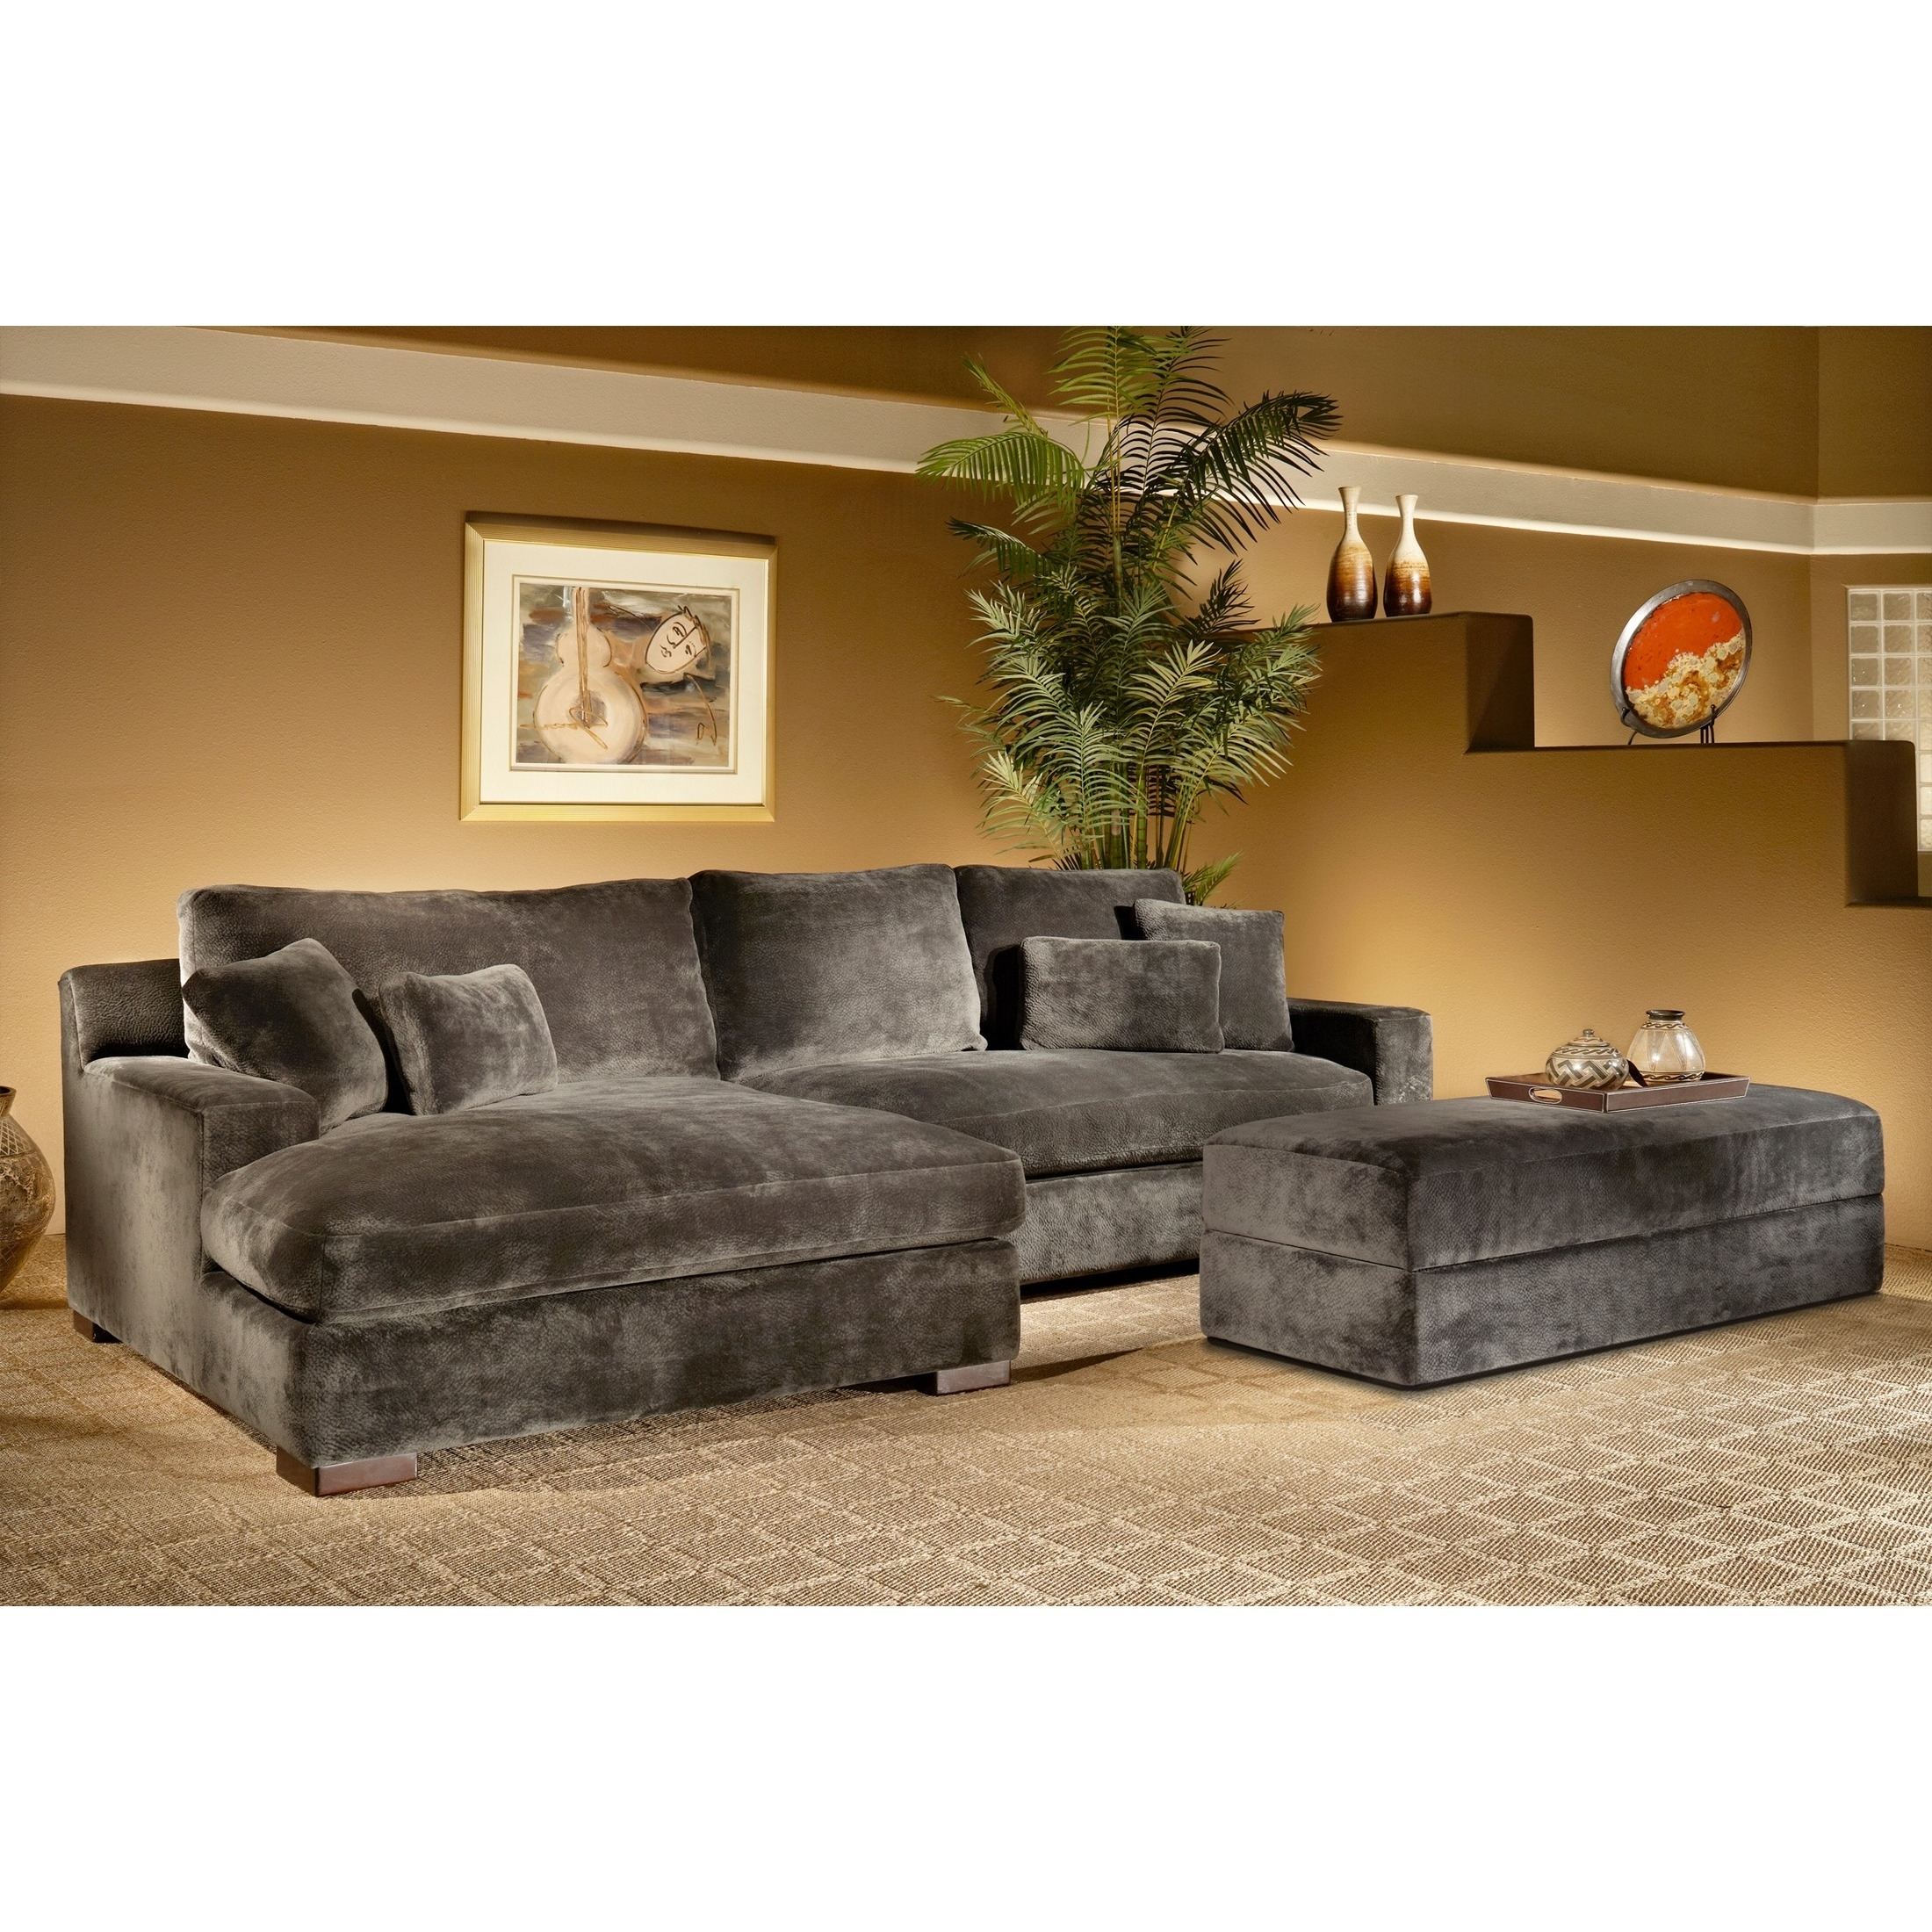 Preferred Wide Seat Sectional Sofas Pertaining To The Doris 3 Piece Smoke Sectional Sofa With Storage Ottoman Is (View 15 of 20)